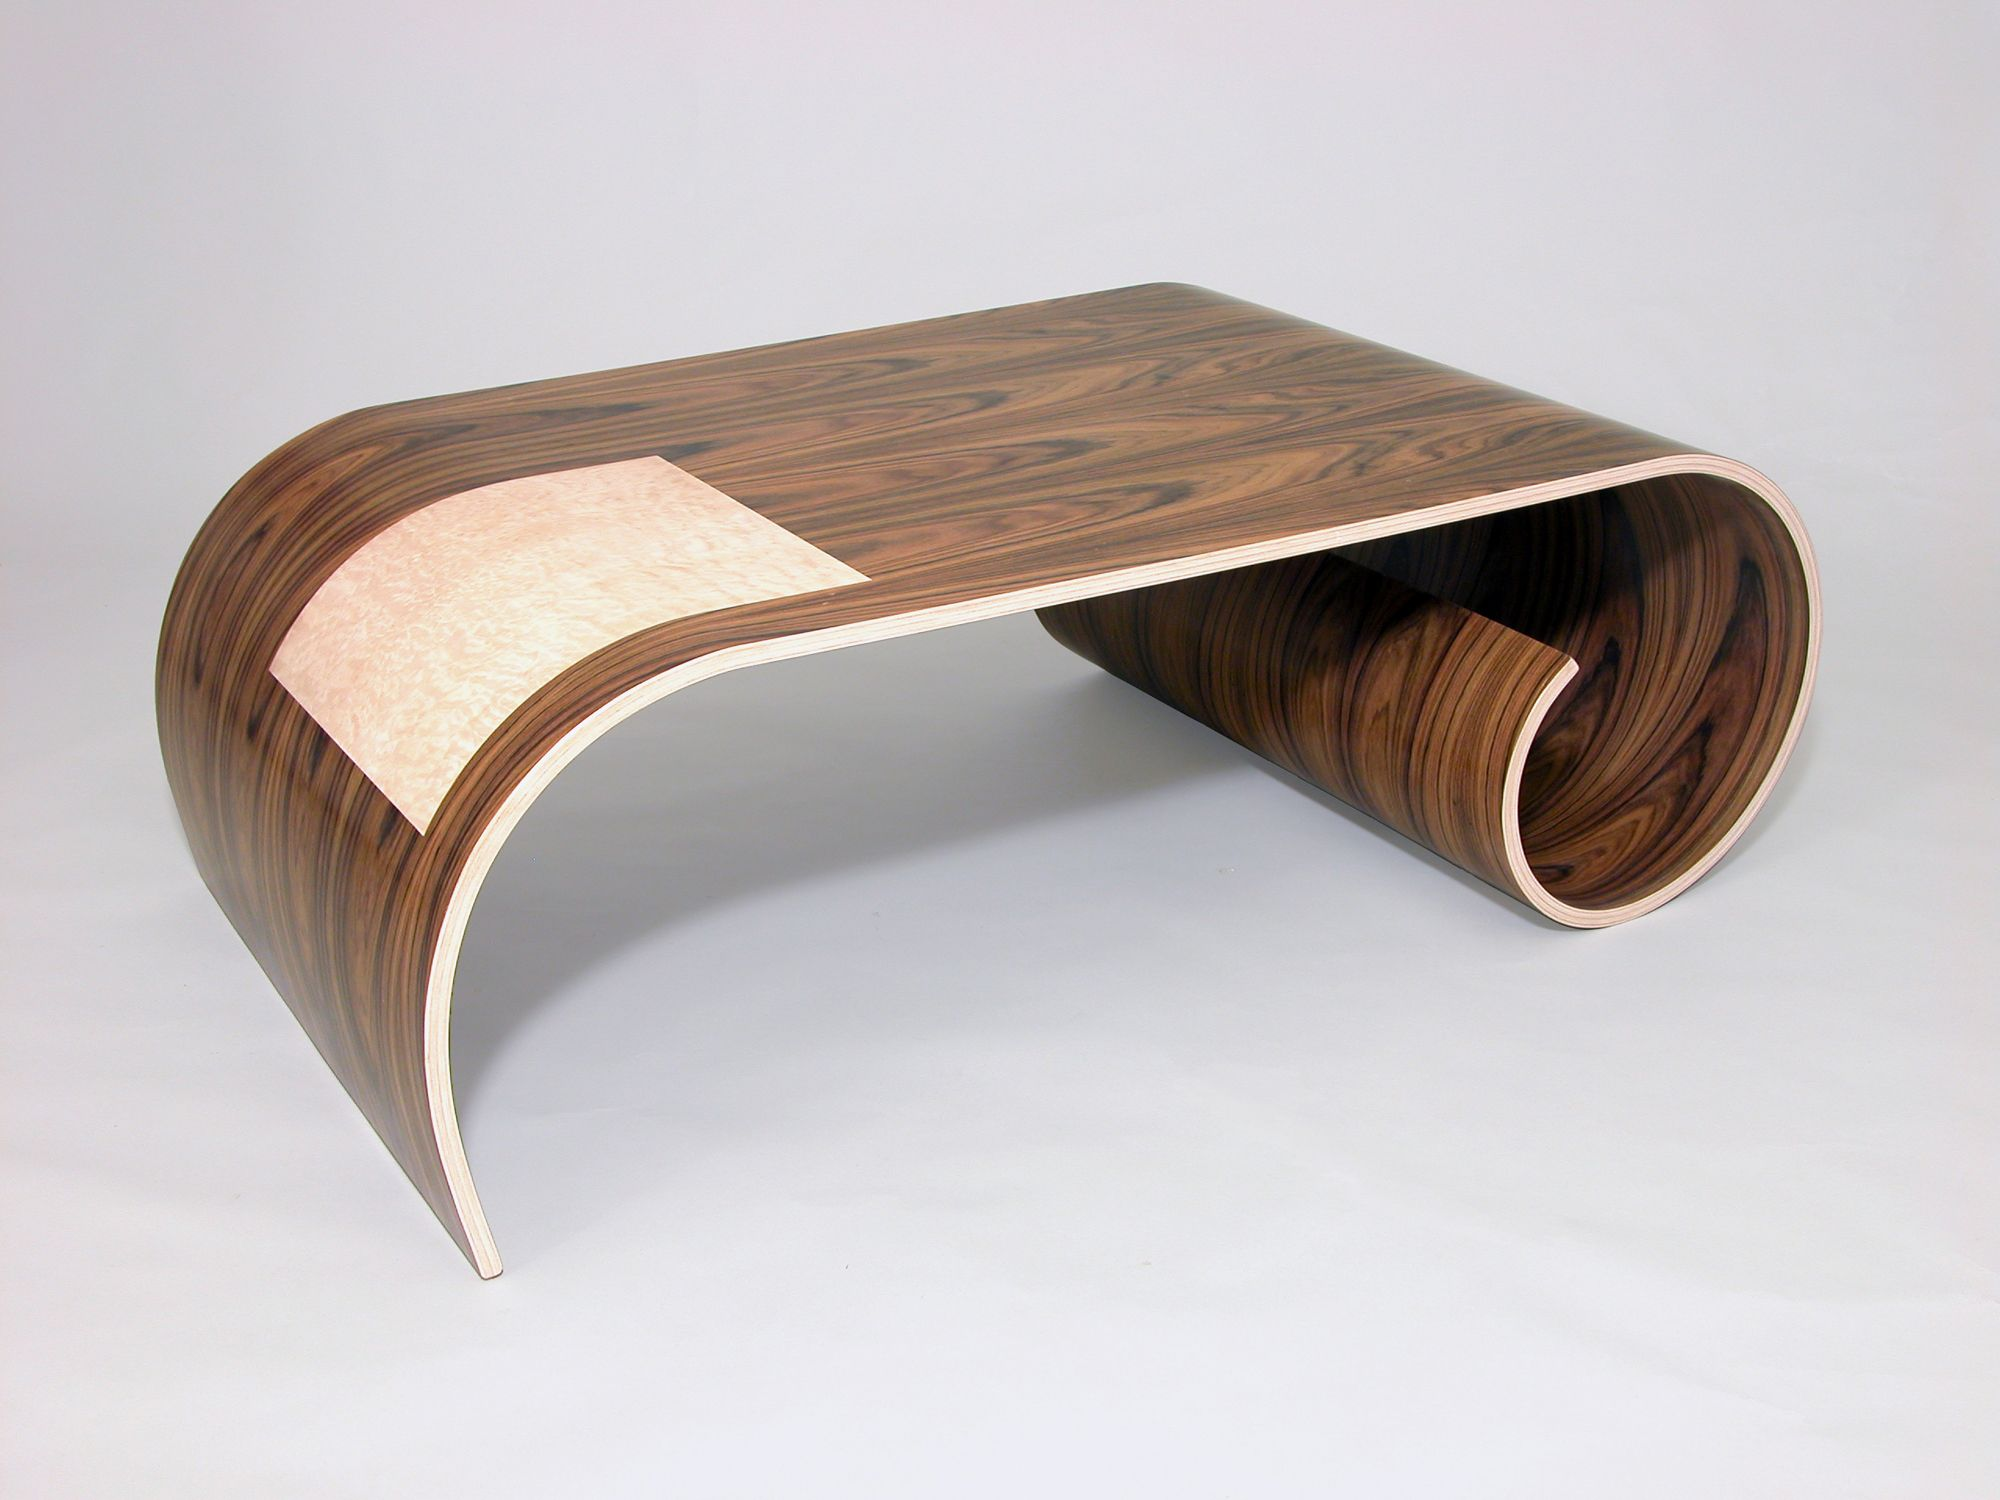 Large Toboggan Table by Kino Guerin